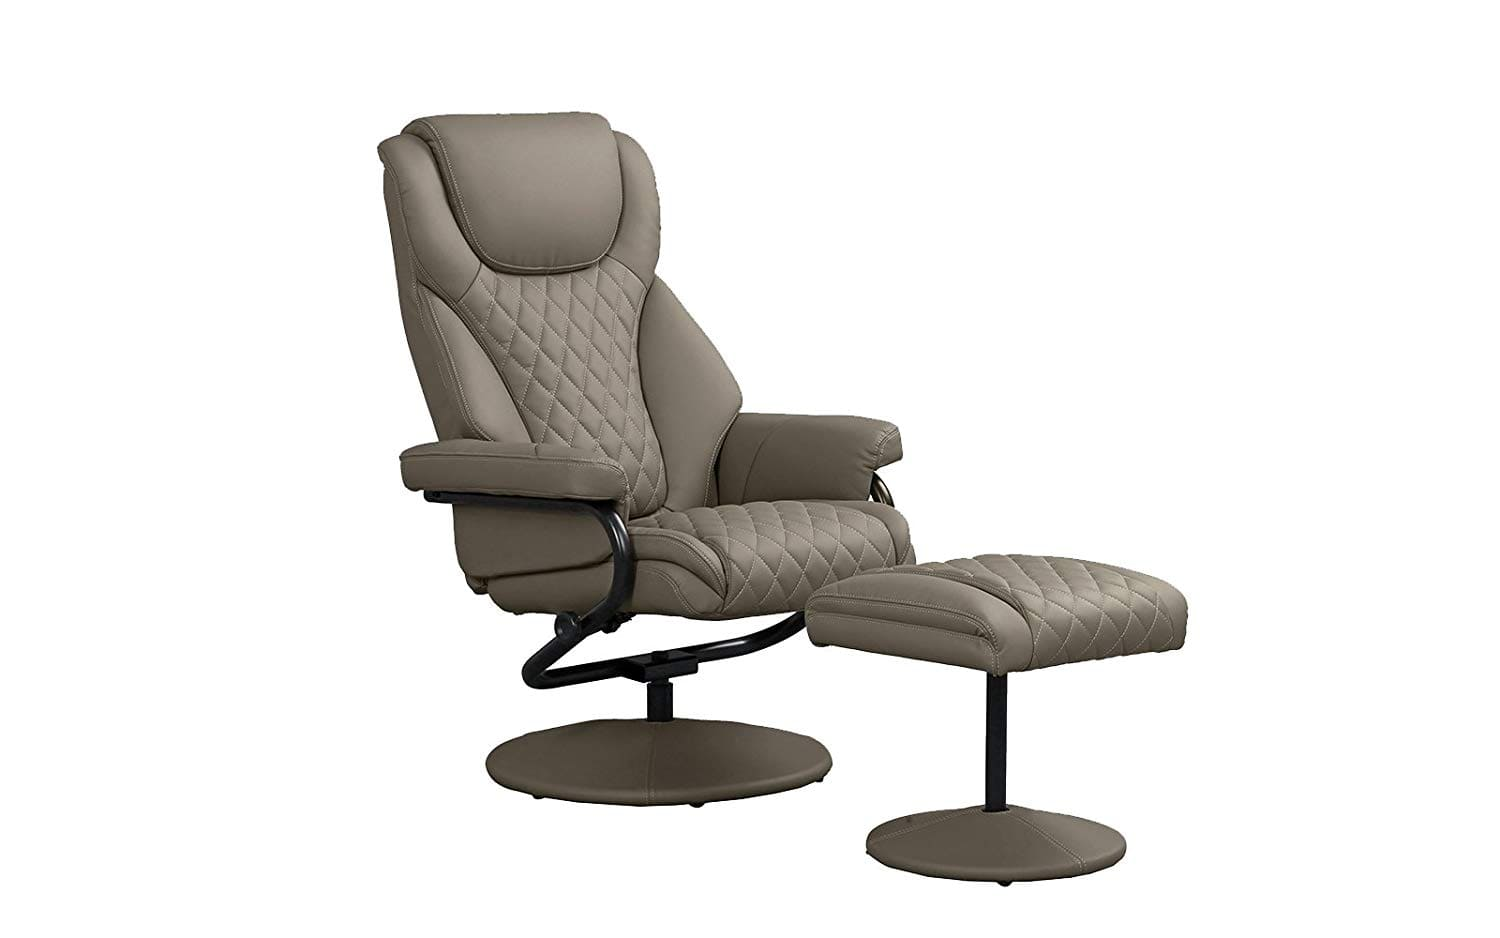 Top 10 Best Reclining Office Chairs In 2019 🥇buying Guide